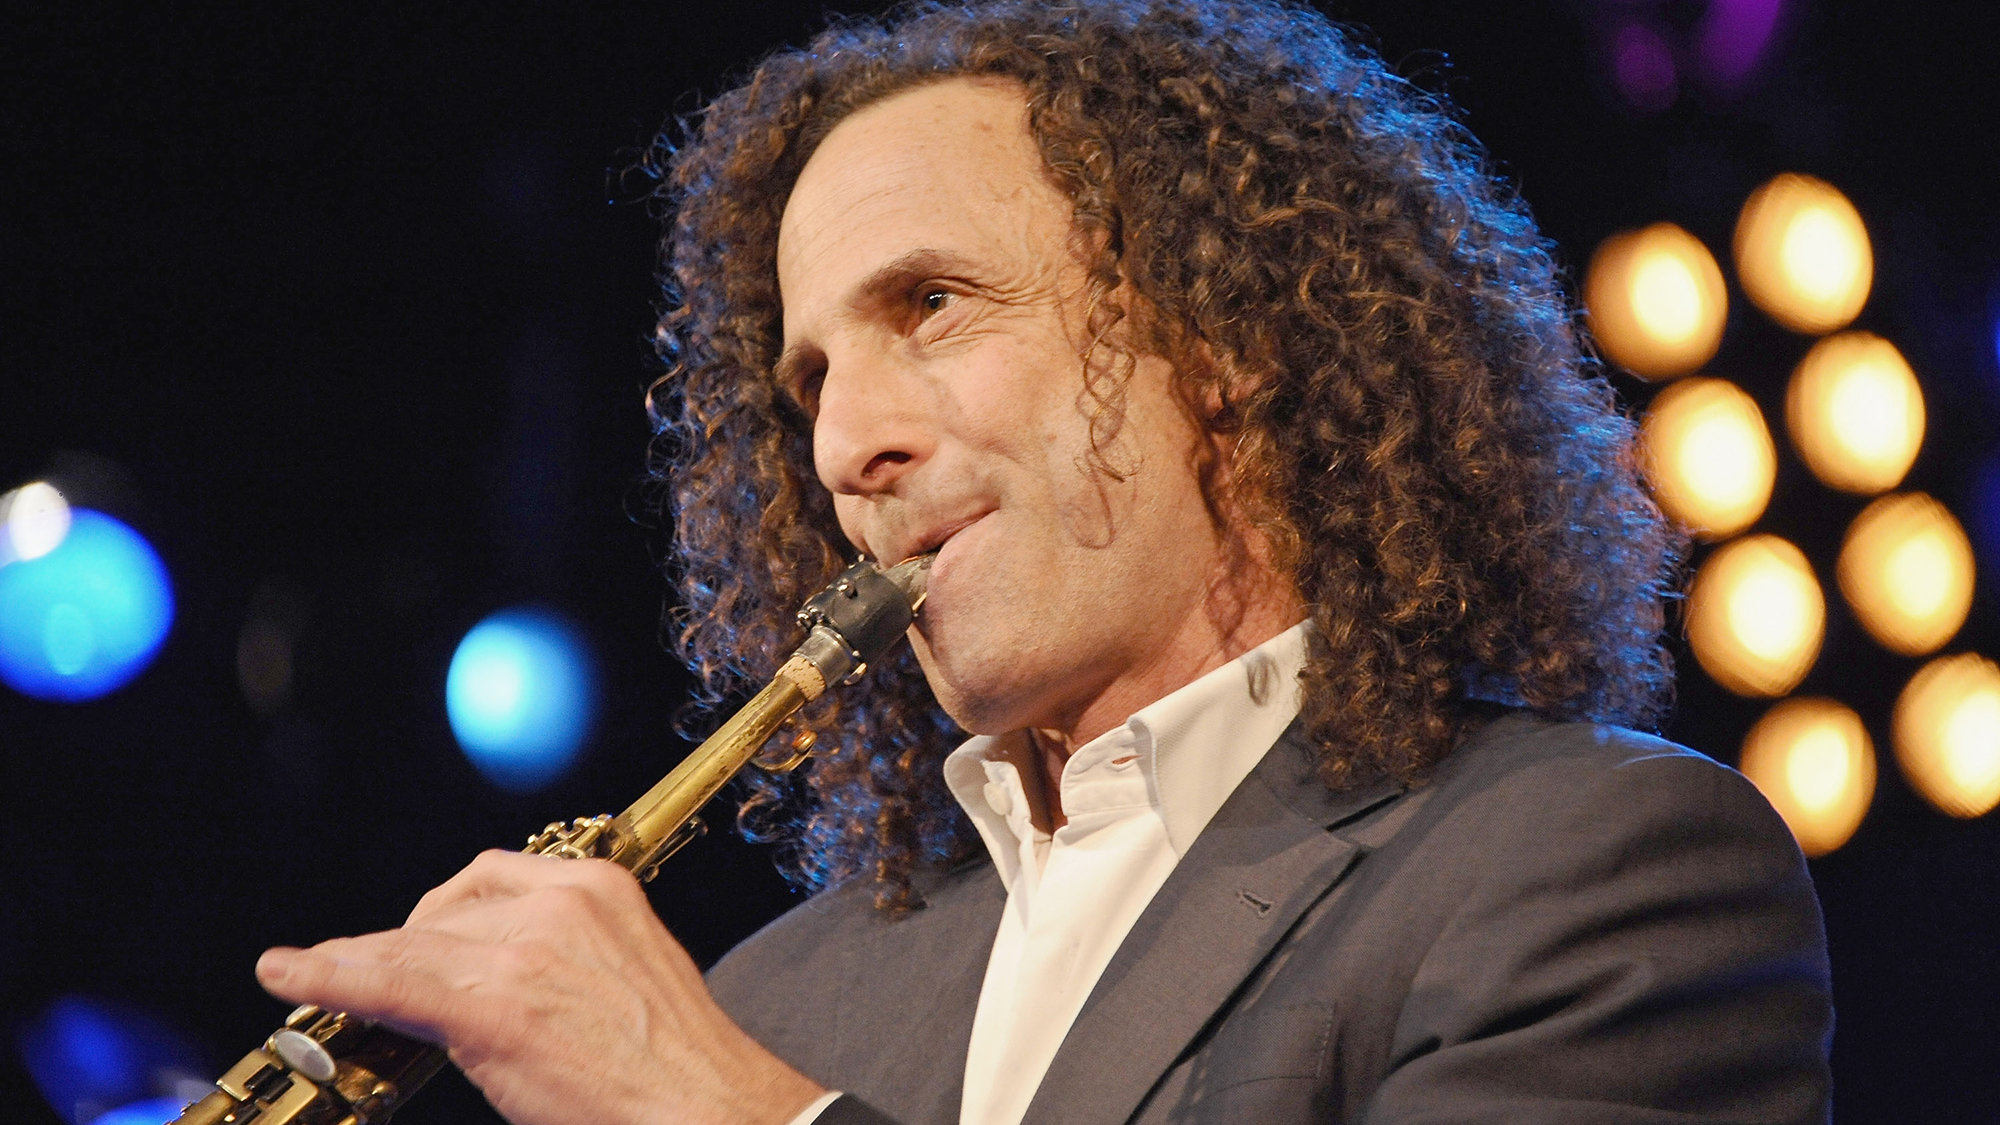 Kenny G - musicians who golf